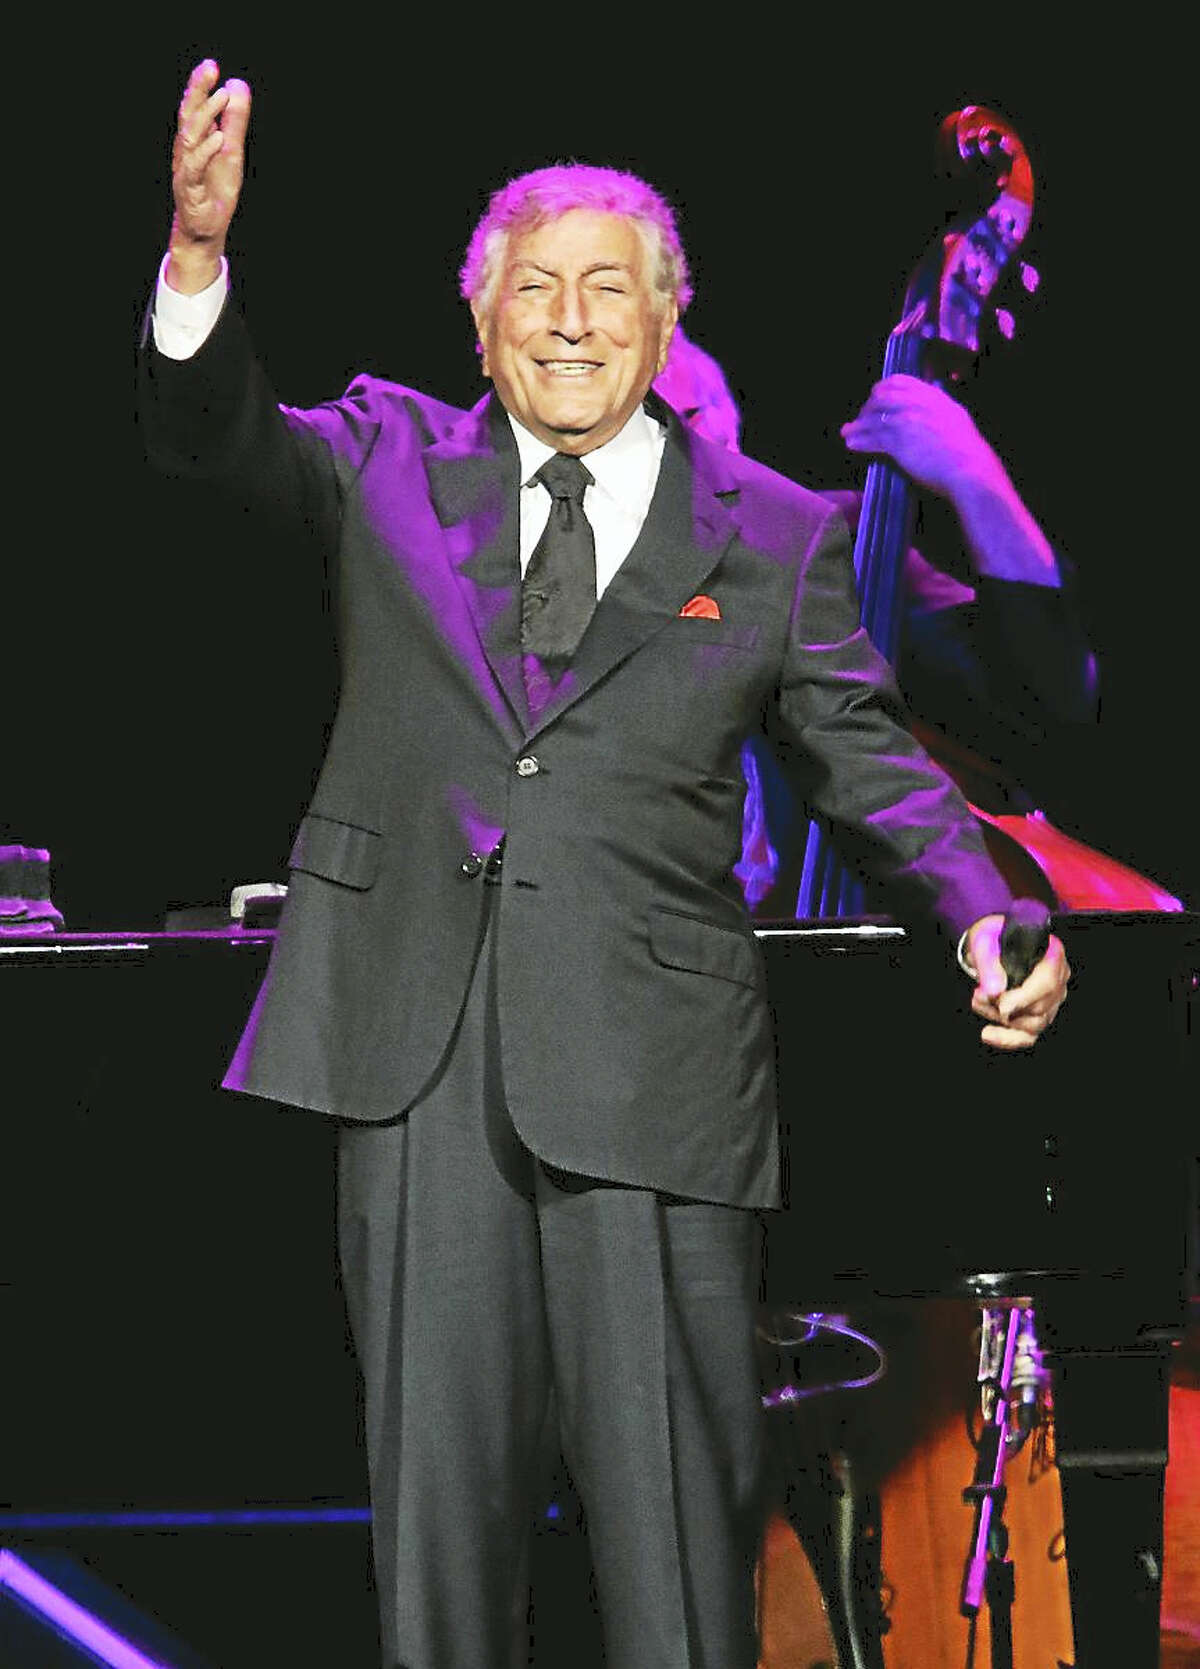 Photo by John AtashianTony Bennett greets a packed house full of fans at the start of his concert at the Mohegan Sun Arena April 1 in Uncasville. The legendary singer of traditional jazz and pop standards, big band music and show tunes, now 89, thoroughly entertained the crowd with his beautiful voice and stage presence. To view more entertainment coming to the Mohegan Sun Casino you can visit www.mohegansun.com.